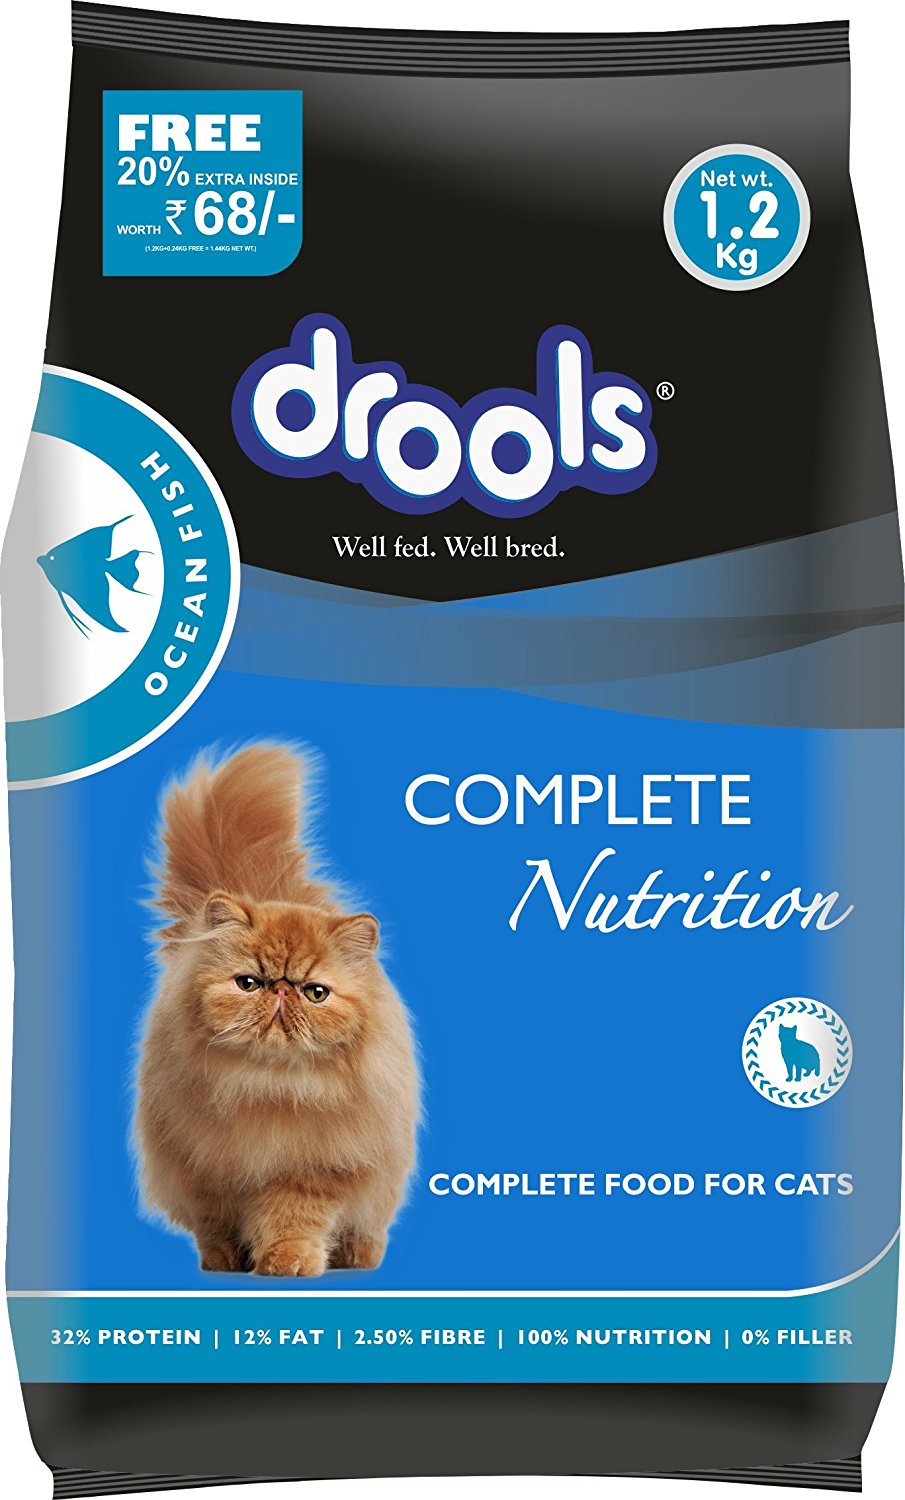 Drools Ocean Fish Adult Cat Food - 1.2 kg (20% Extra FREE Inside Offer)